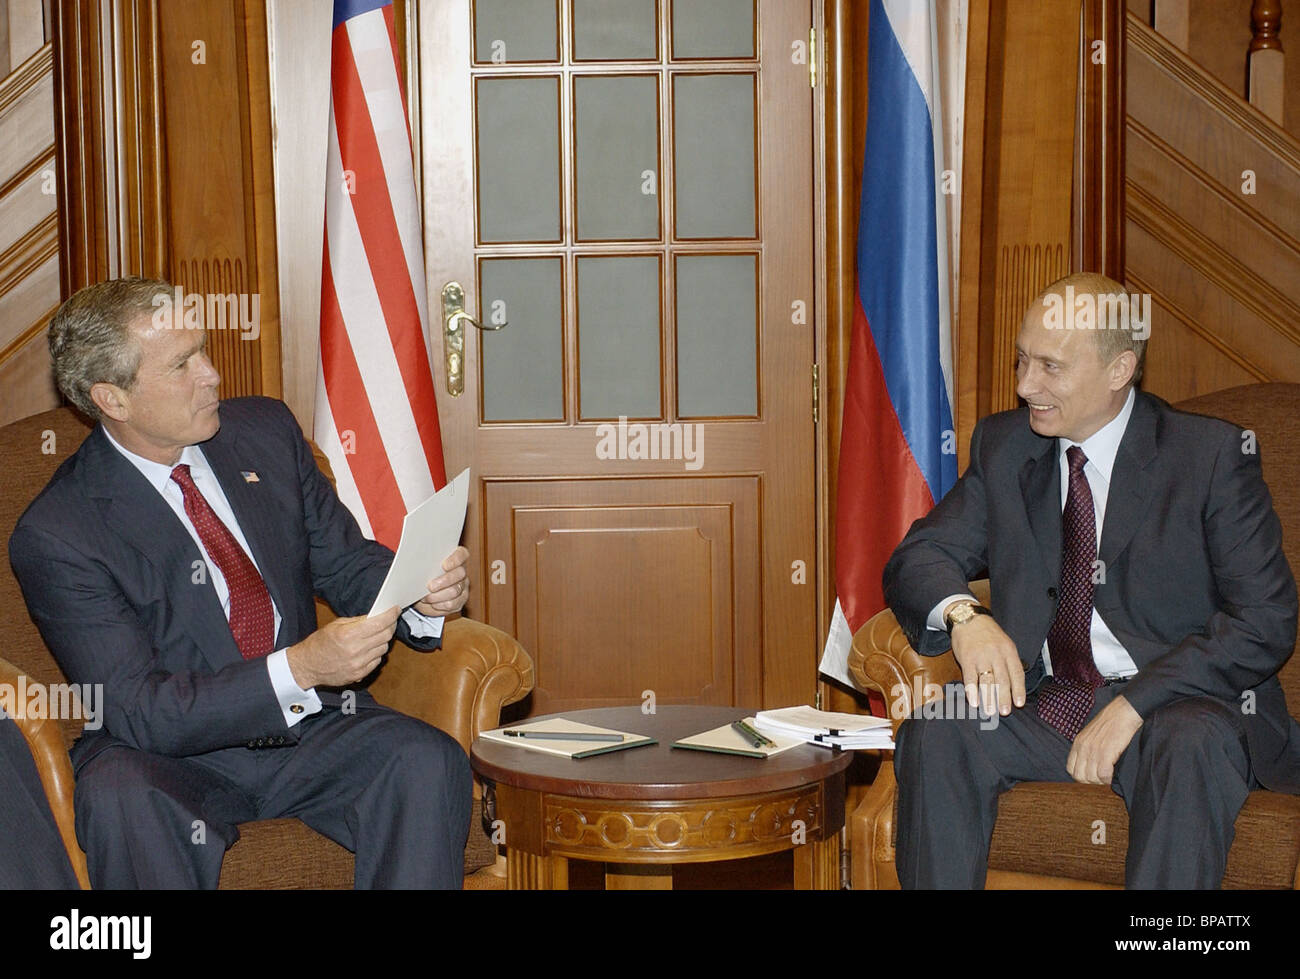 Presidents of Russia and the USA hold talks - Stock Image